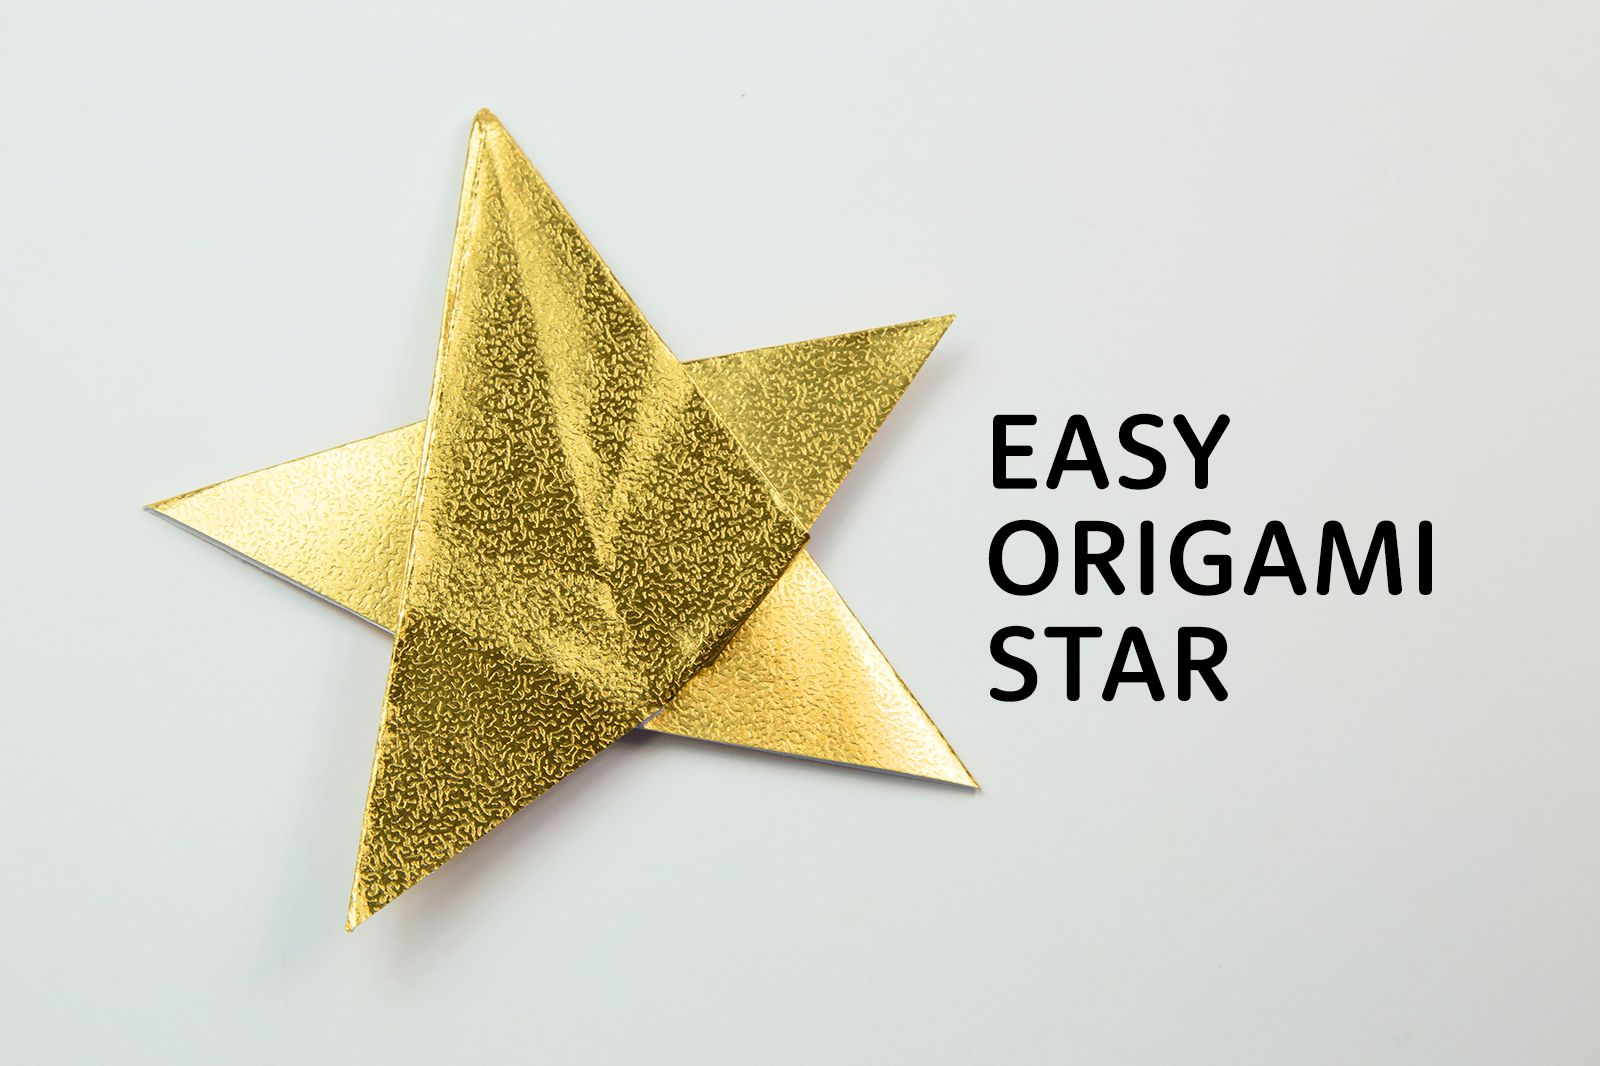 Simple 5 Point Origami Star Instructions - photo#7